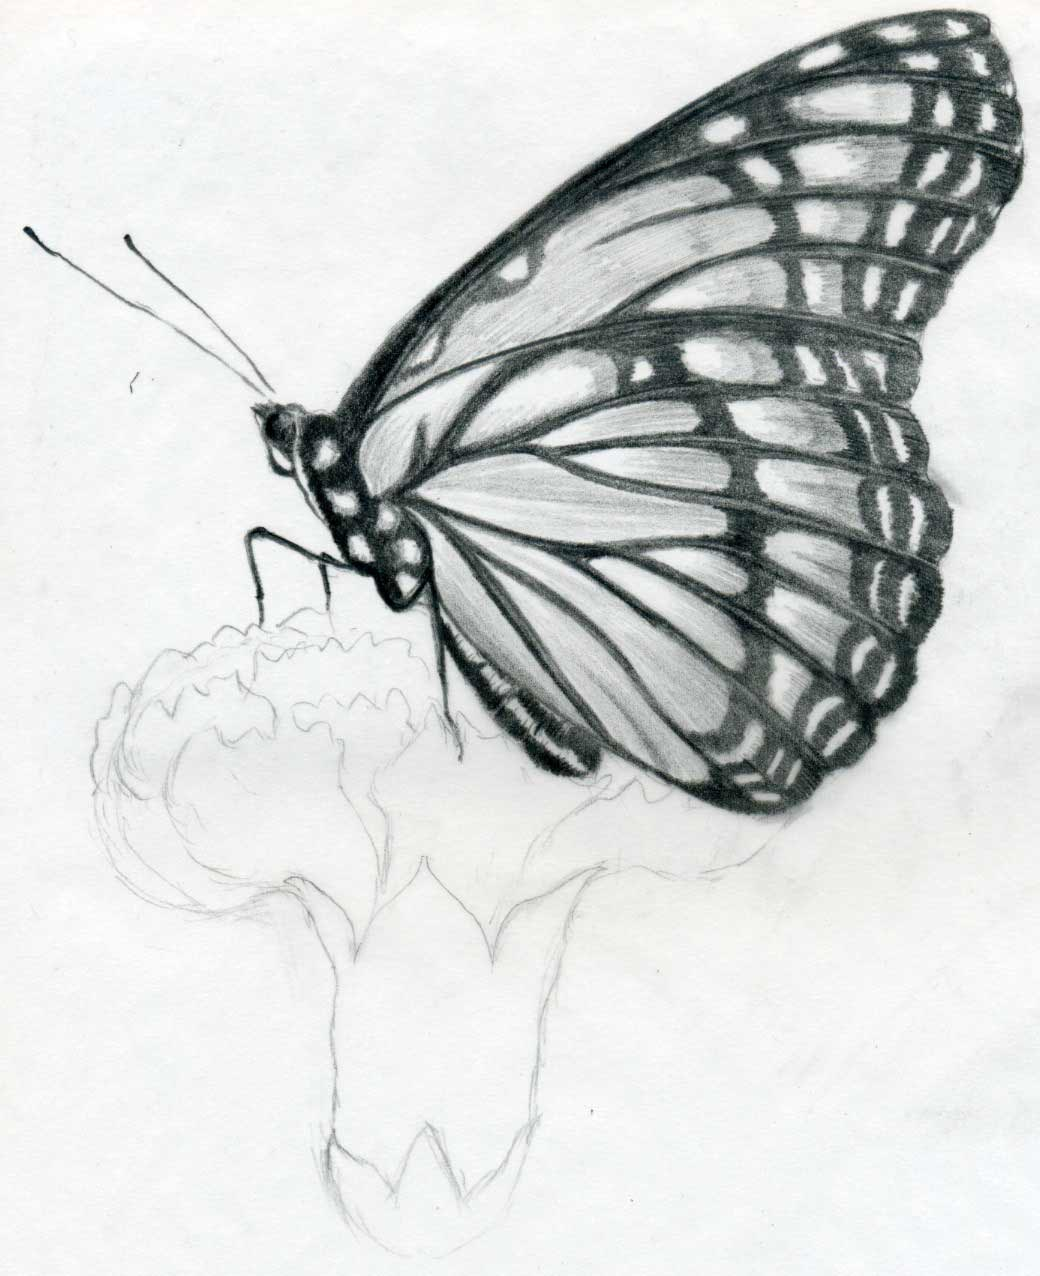 Pencil drawing butterfly sketches wallpapers cute birds sketches 1040x1276